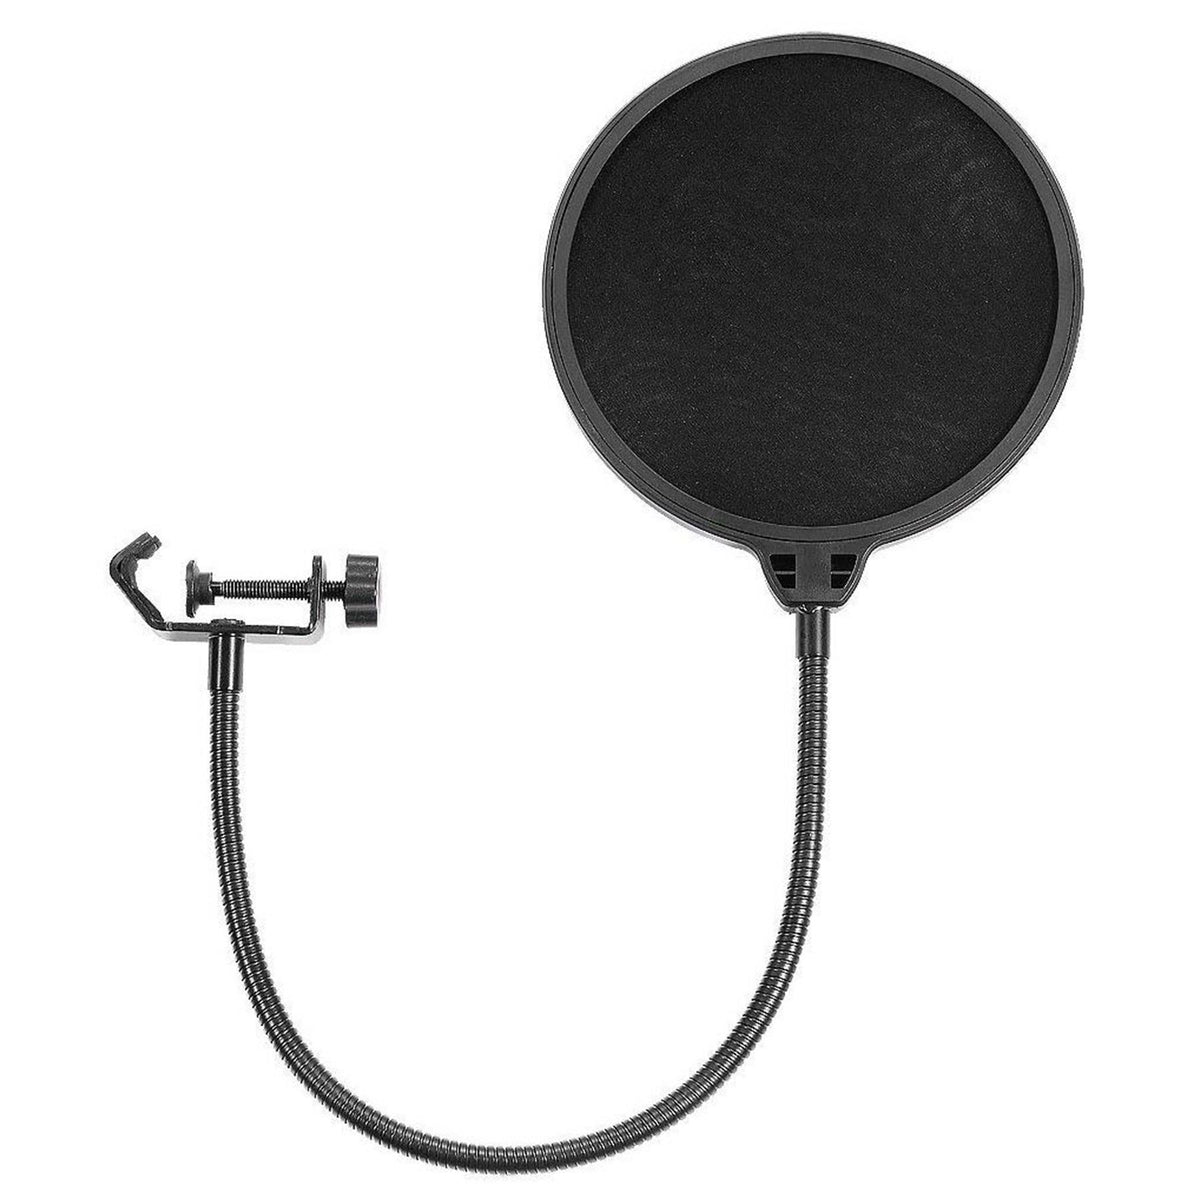 MXL V87 Microphone Bundle with 20-foot XLR Cable & Pop Filter